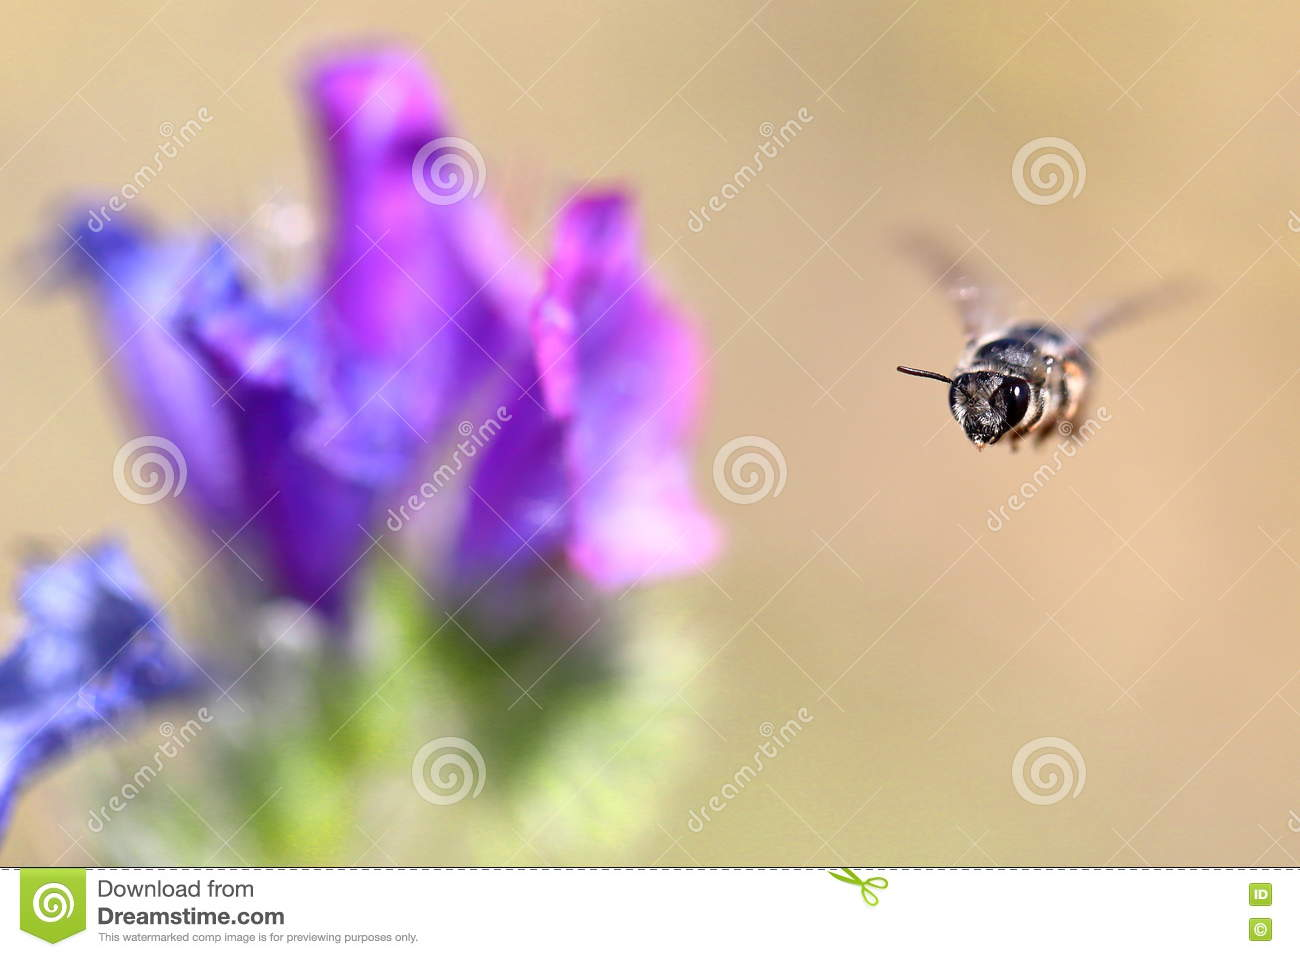 Bee caught in midair